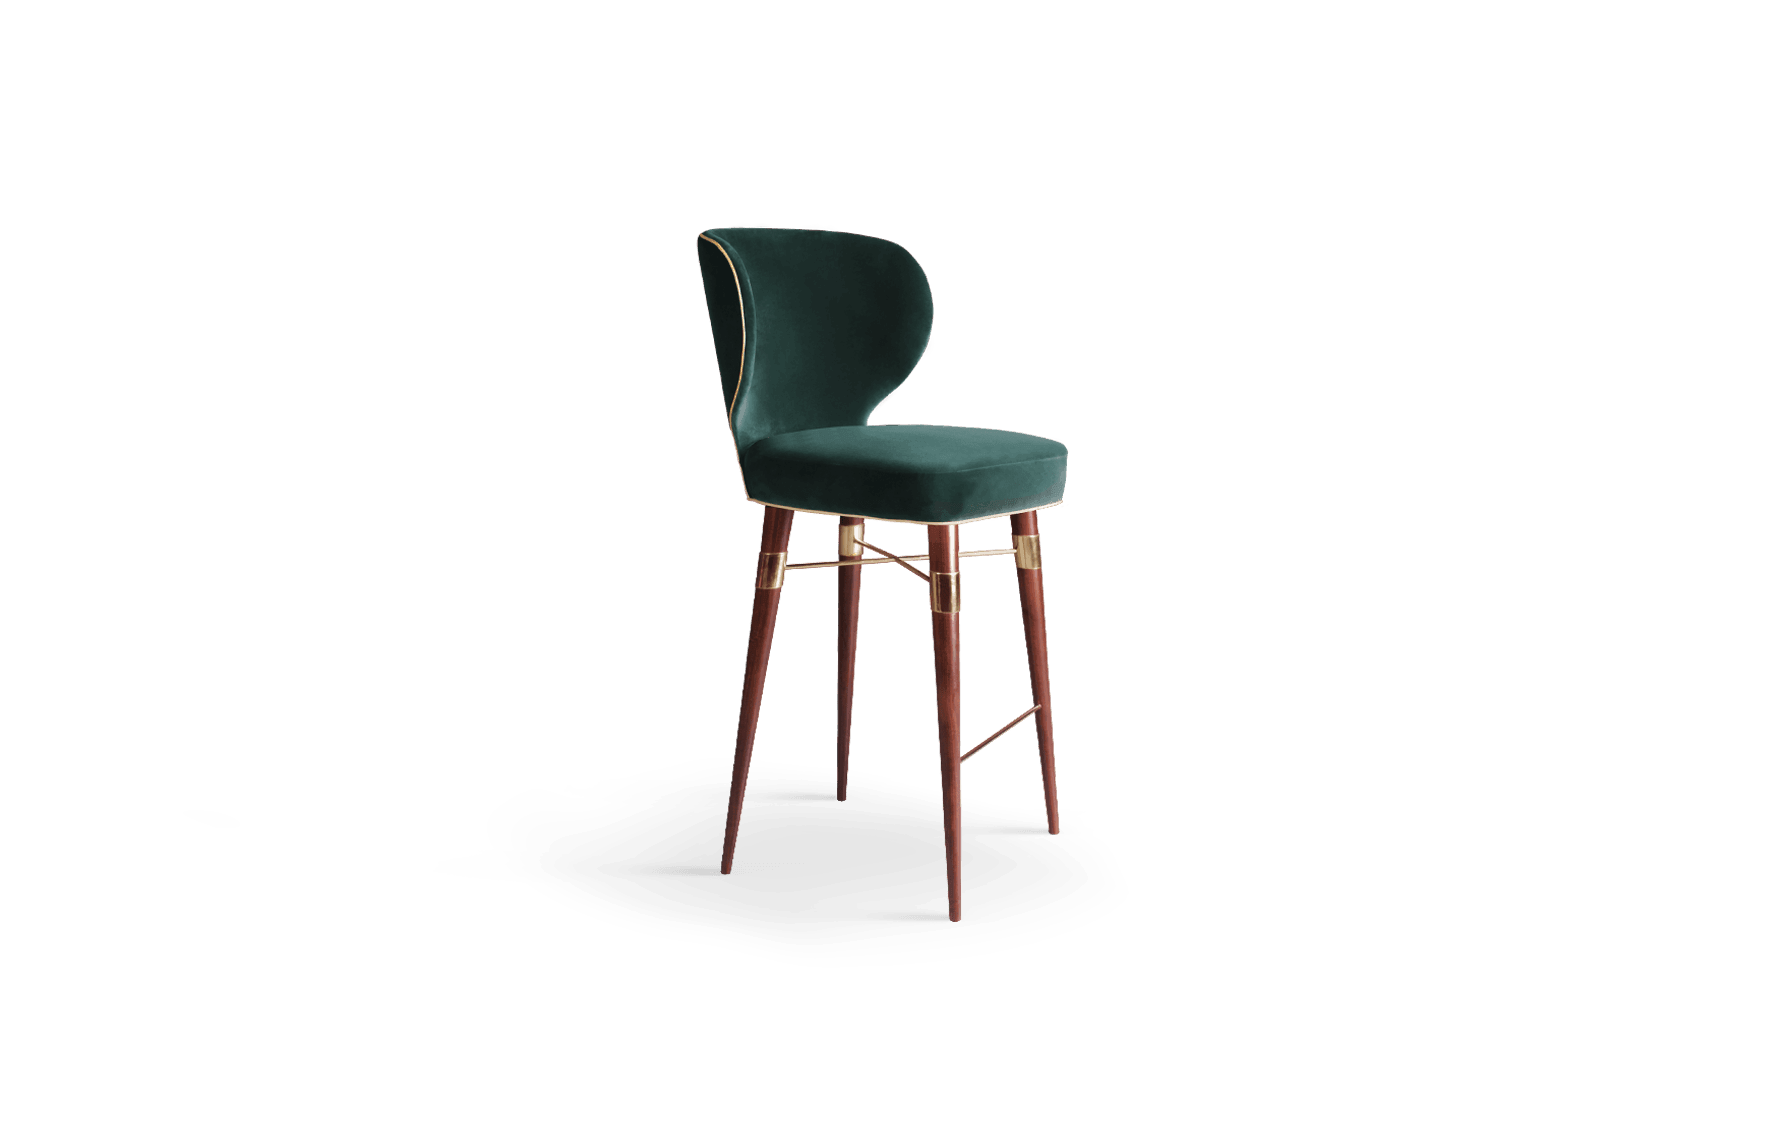 Louis Mid-Century Bar Chair by Ottiu | Beyond Upholstery